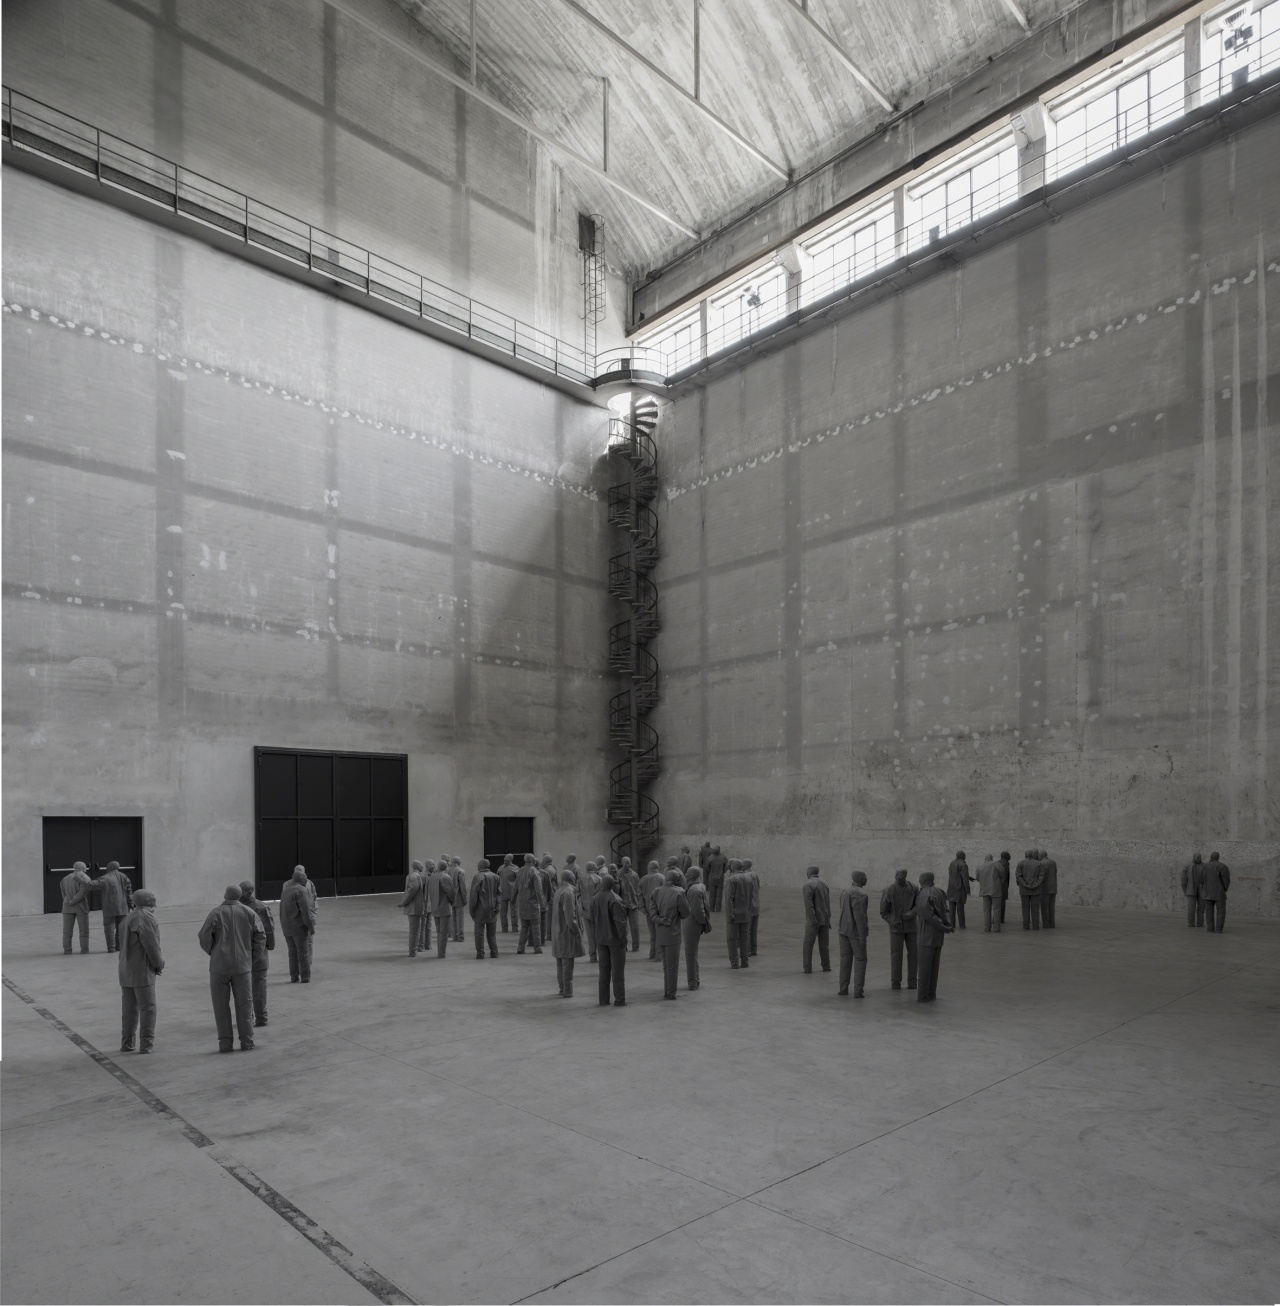 Installation view HangarBicocca, Milan, 2015. Photo: Attilio Maranzano